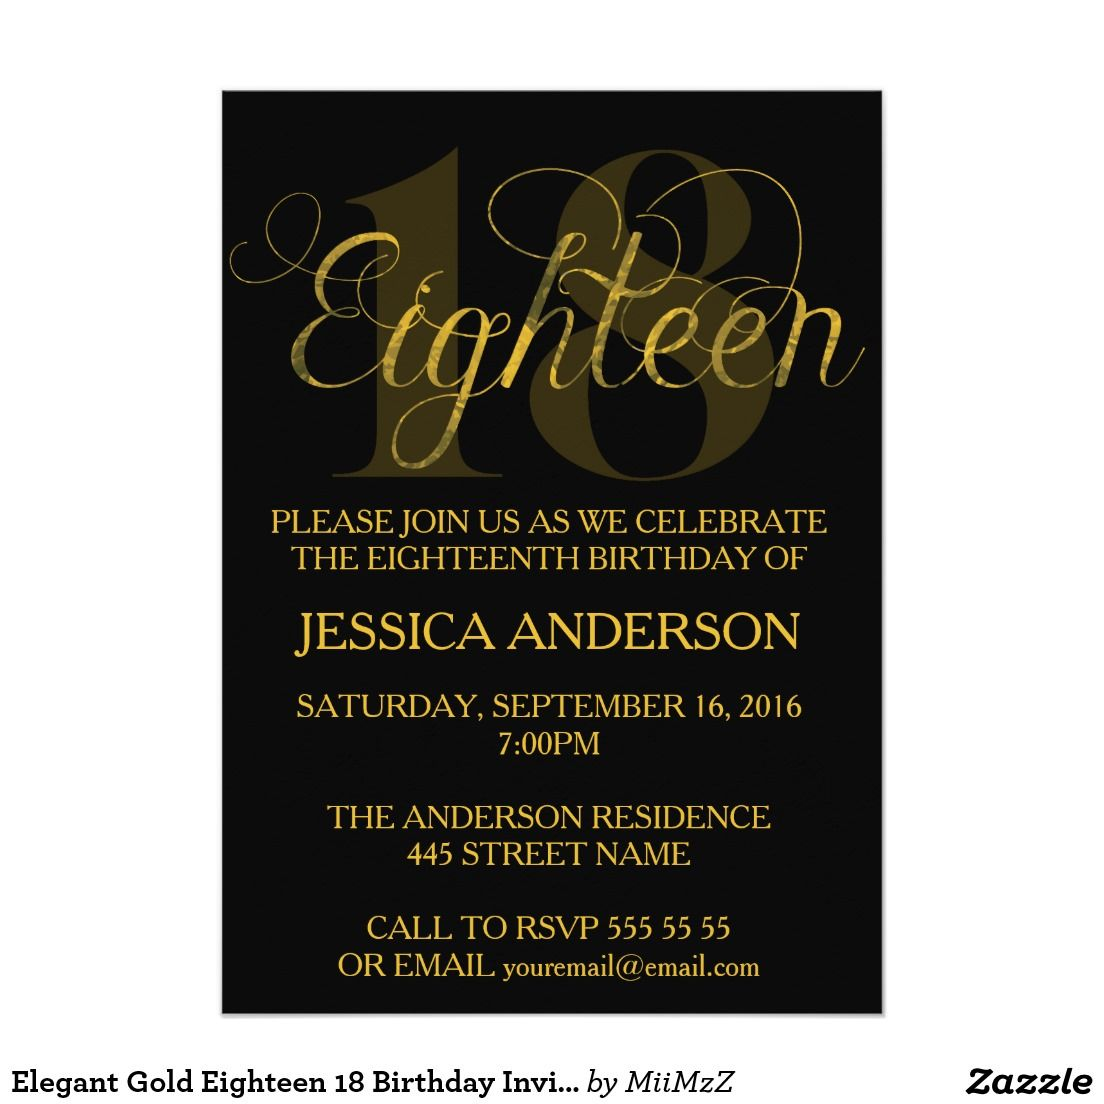 Elegant Gold Eighteen 18 Birthday Invitation #Eighteen #Eighteenth #18 # Birthday #Gold #Glitter #Invitation